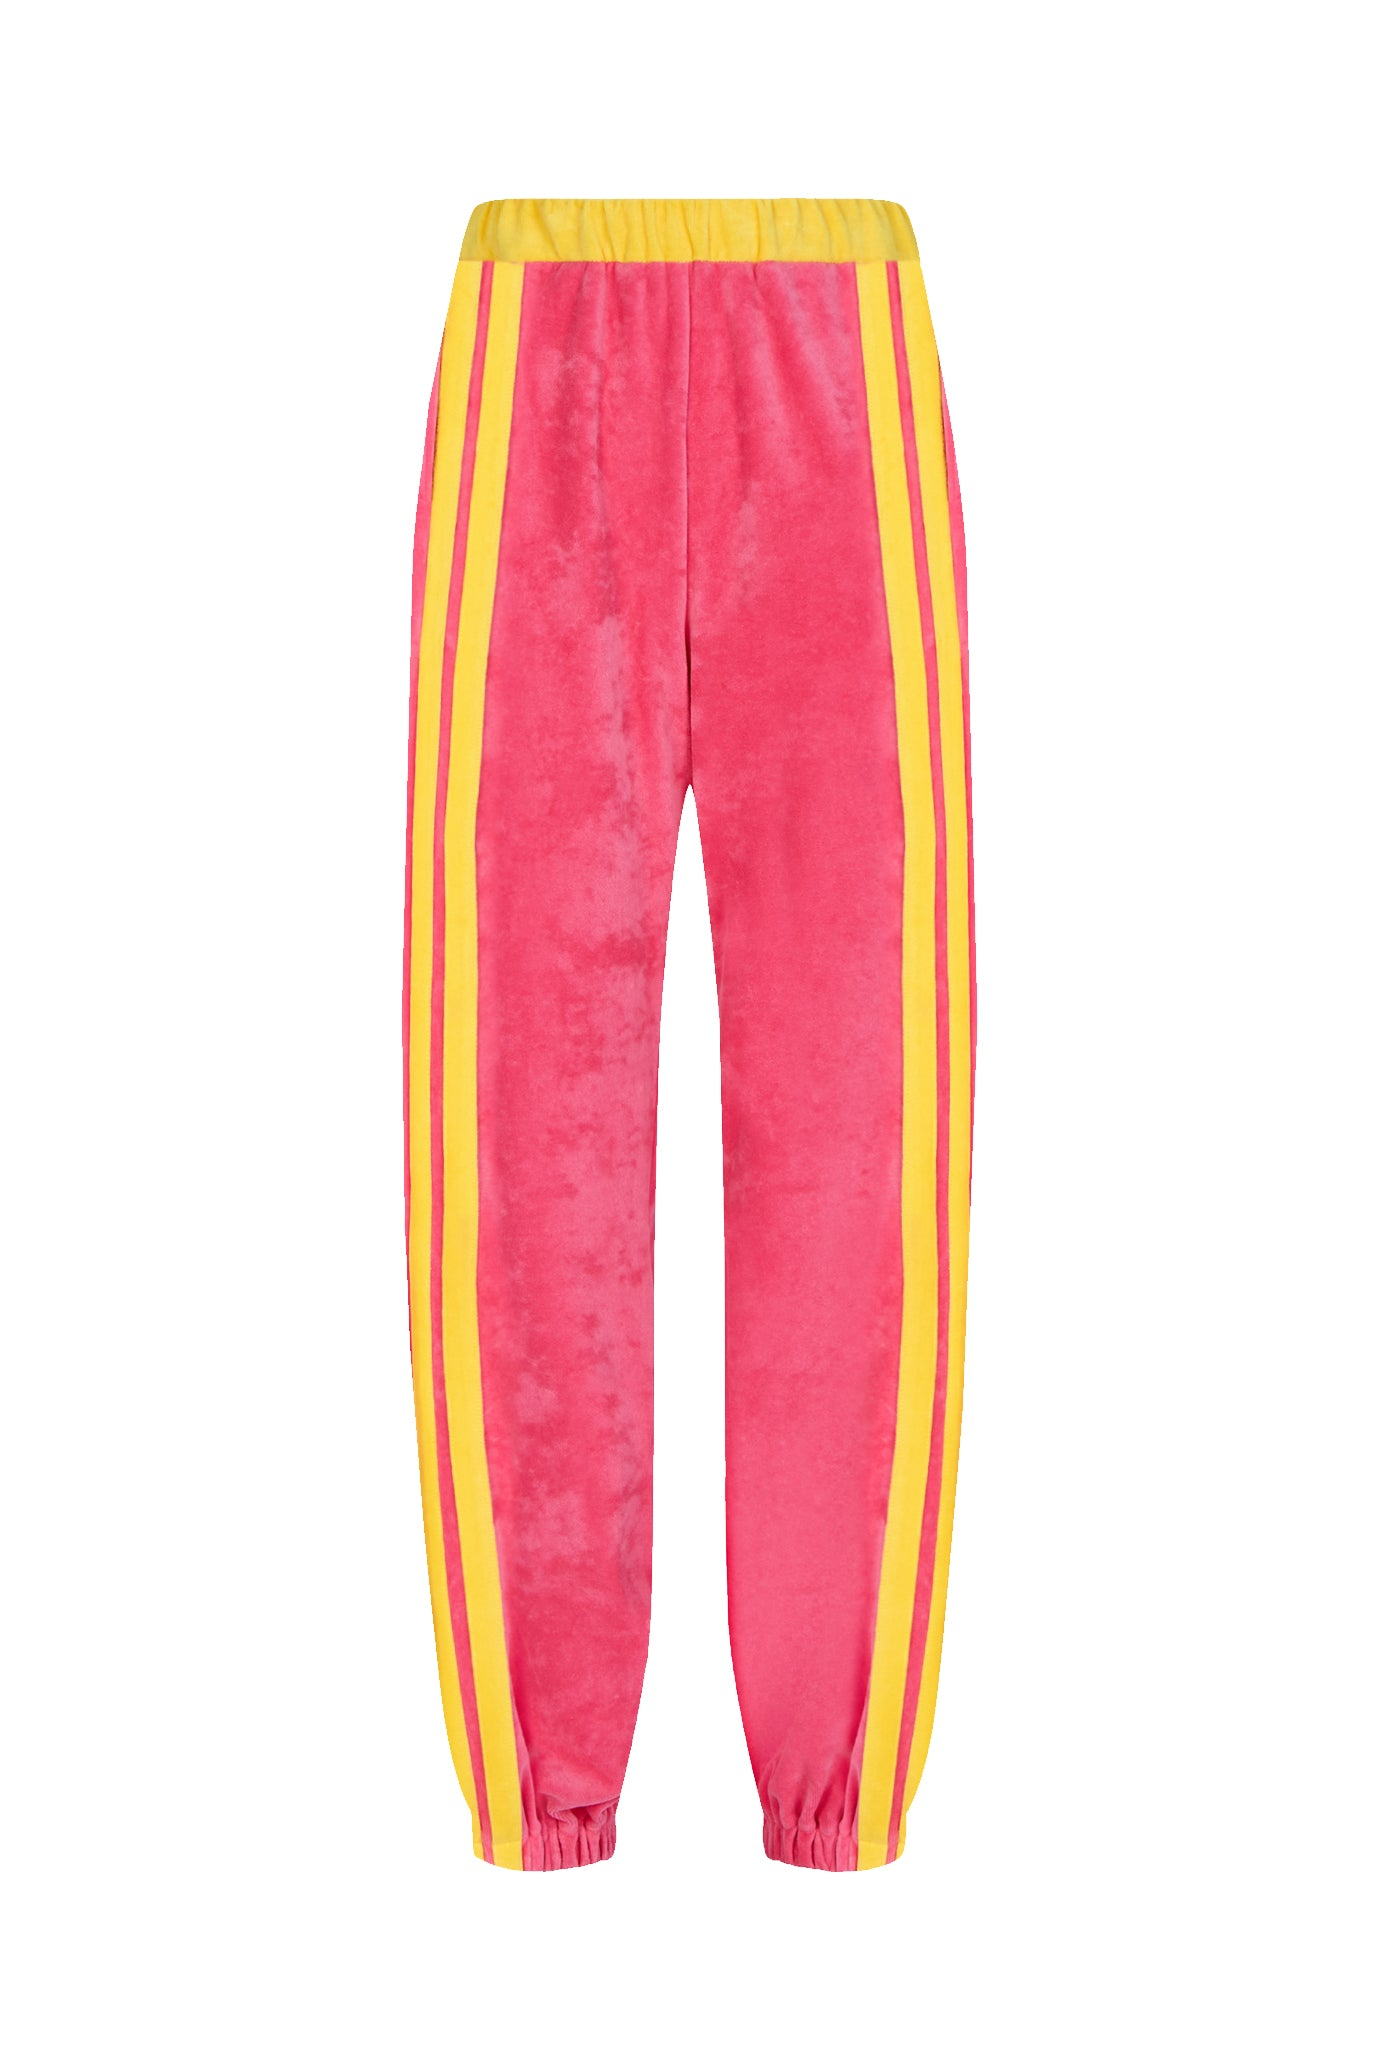 gathered hem jogger pink yellow velour serena bute